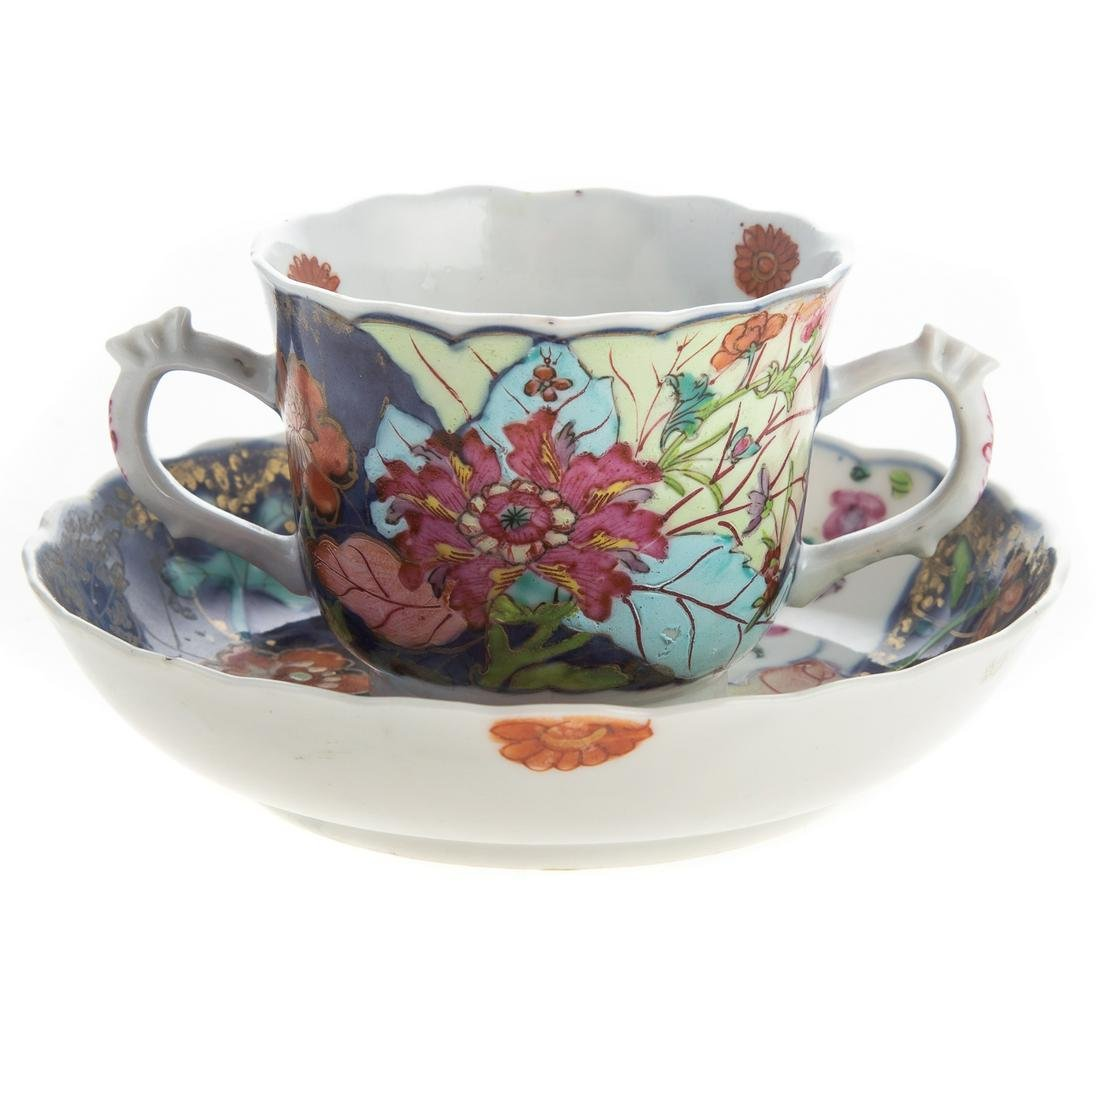 Chinese Export Double Handled Cup & Saucer